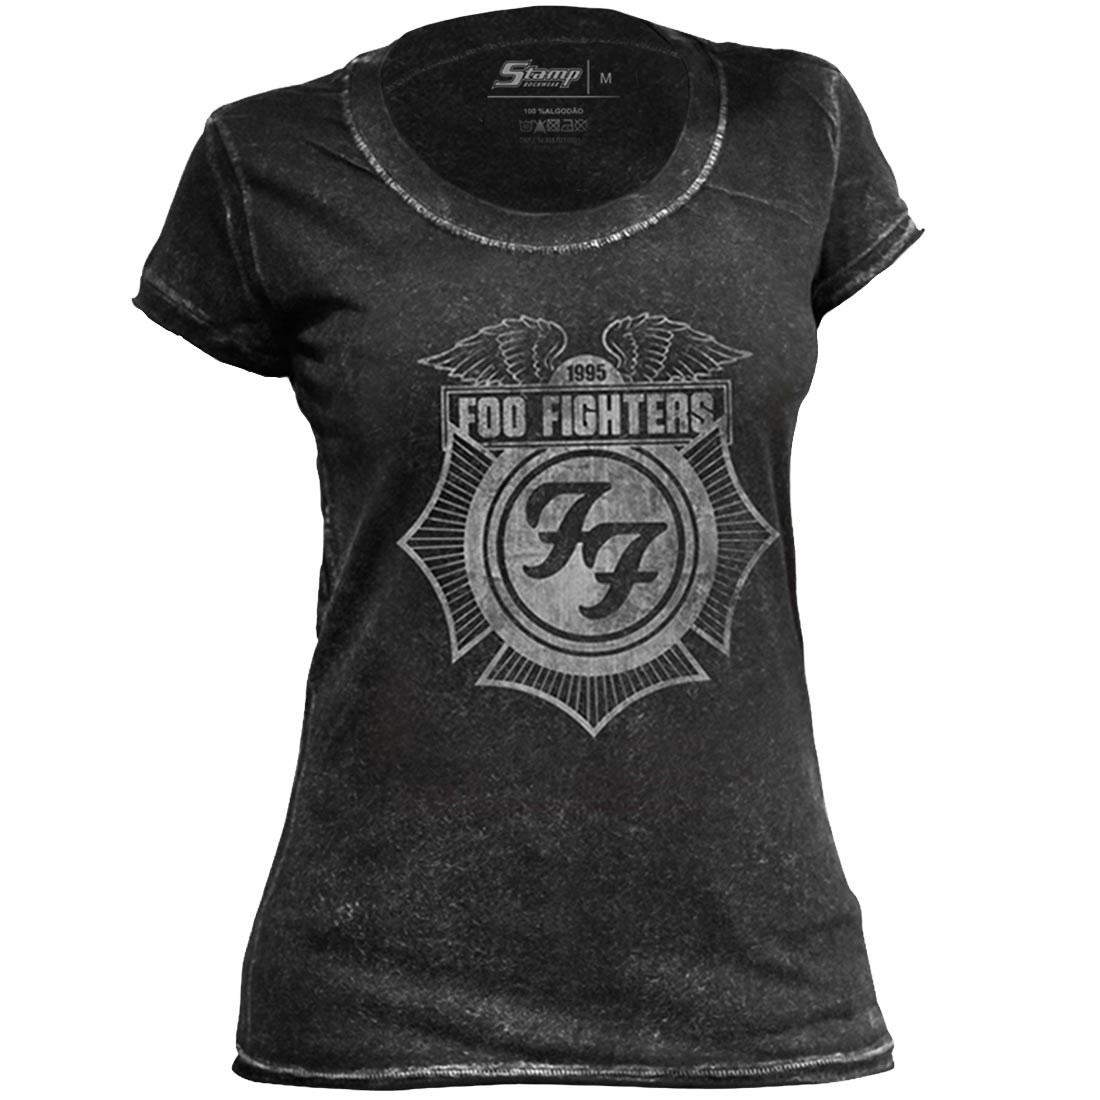 Camiseta Feminina Especial Foo Fighters